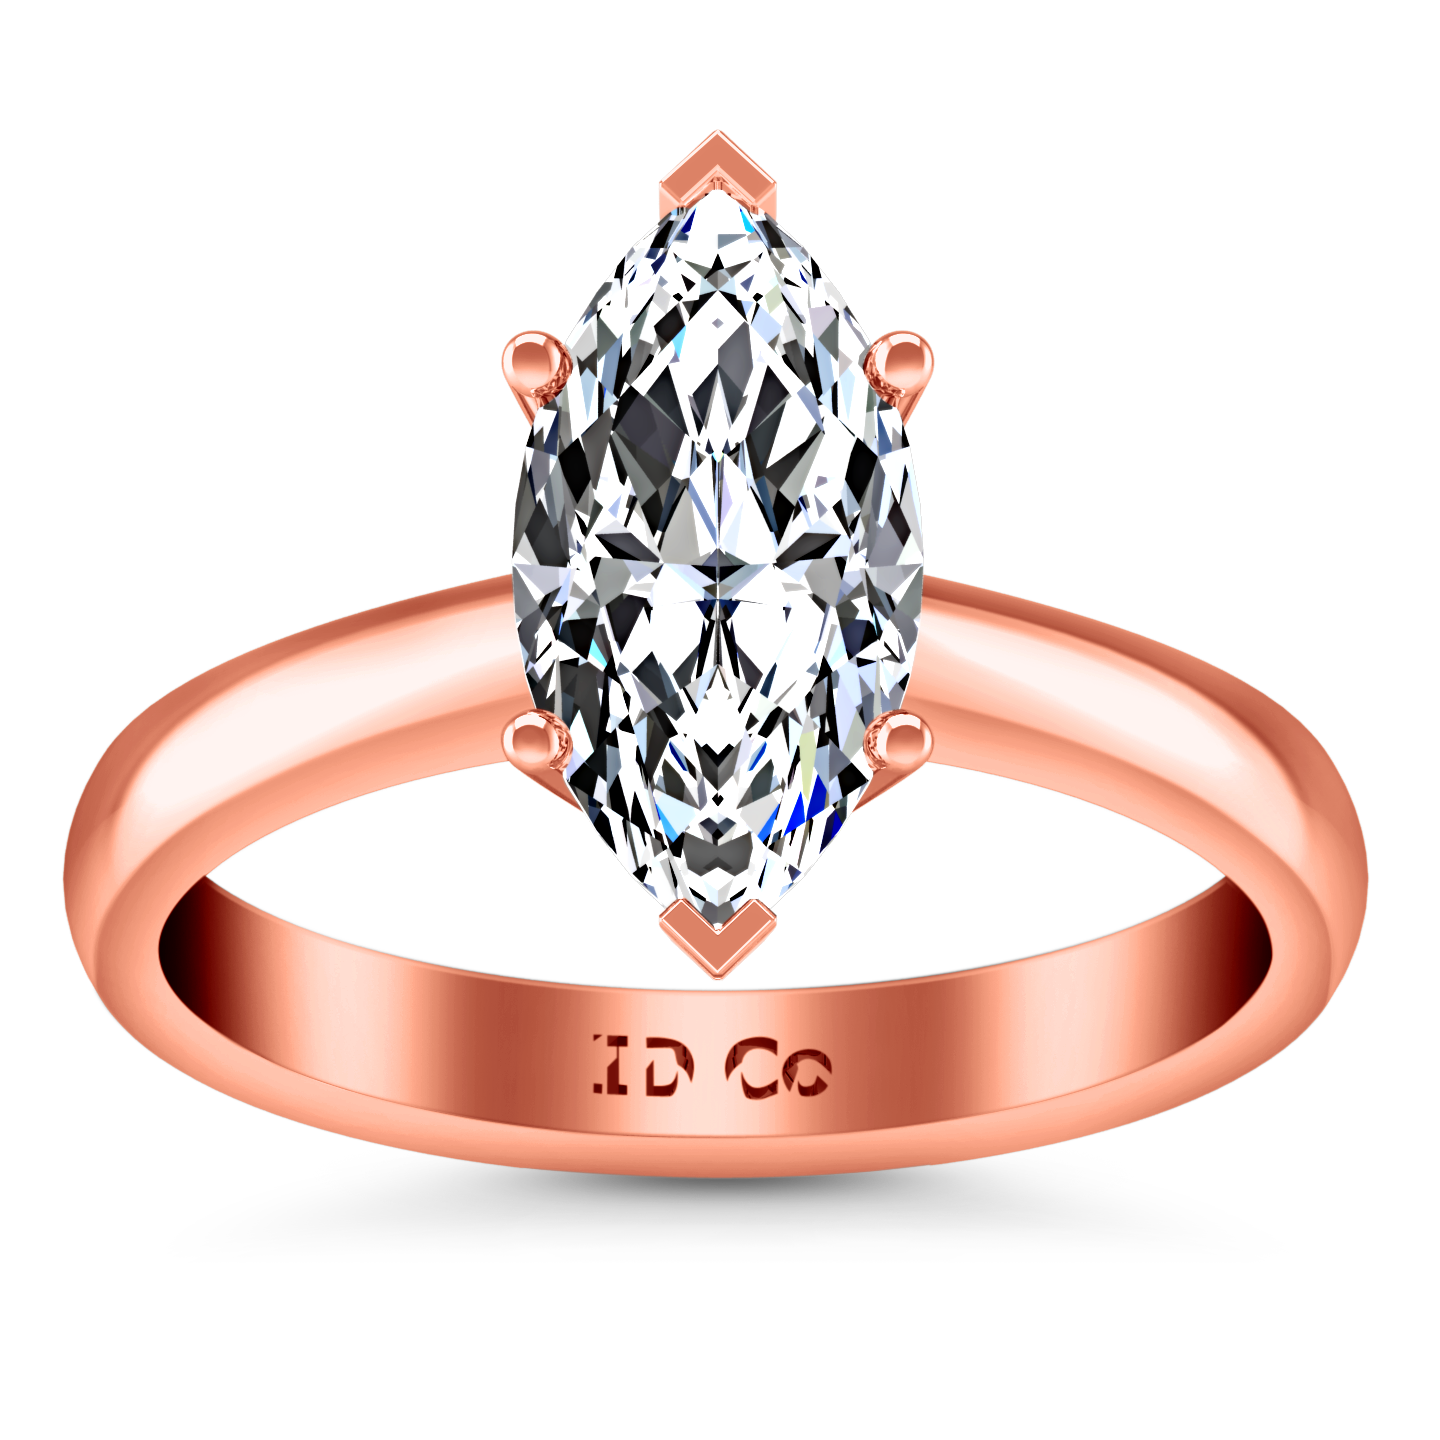 1600aadad Solitaire Engagement Ring Scarlet 14K Rose Gold – Imagine Diamonds